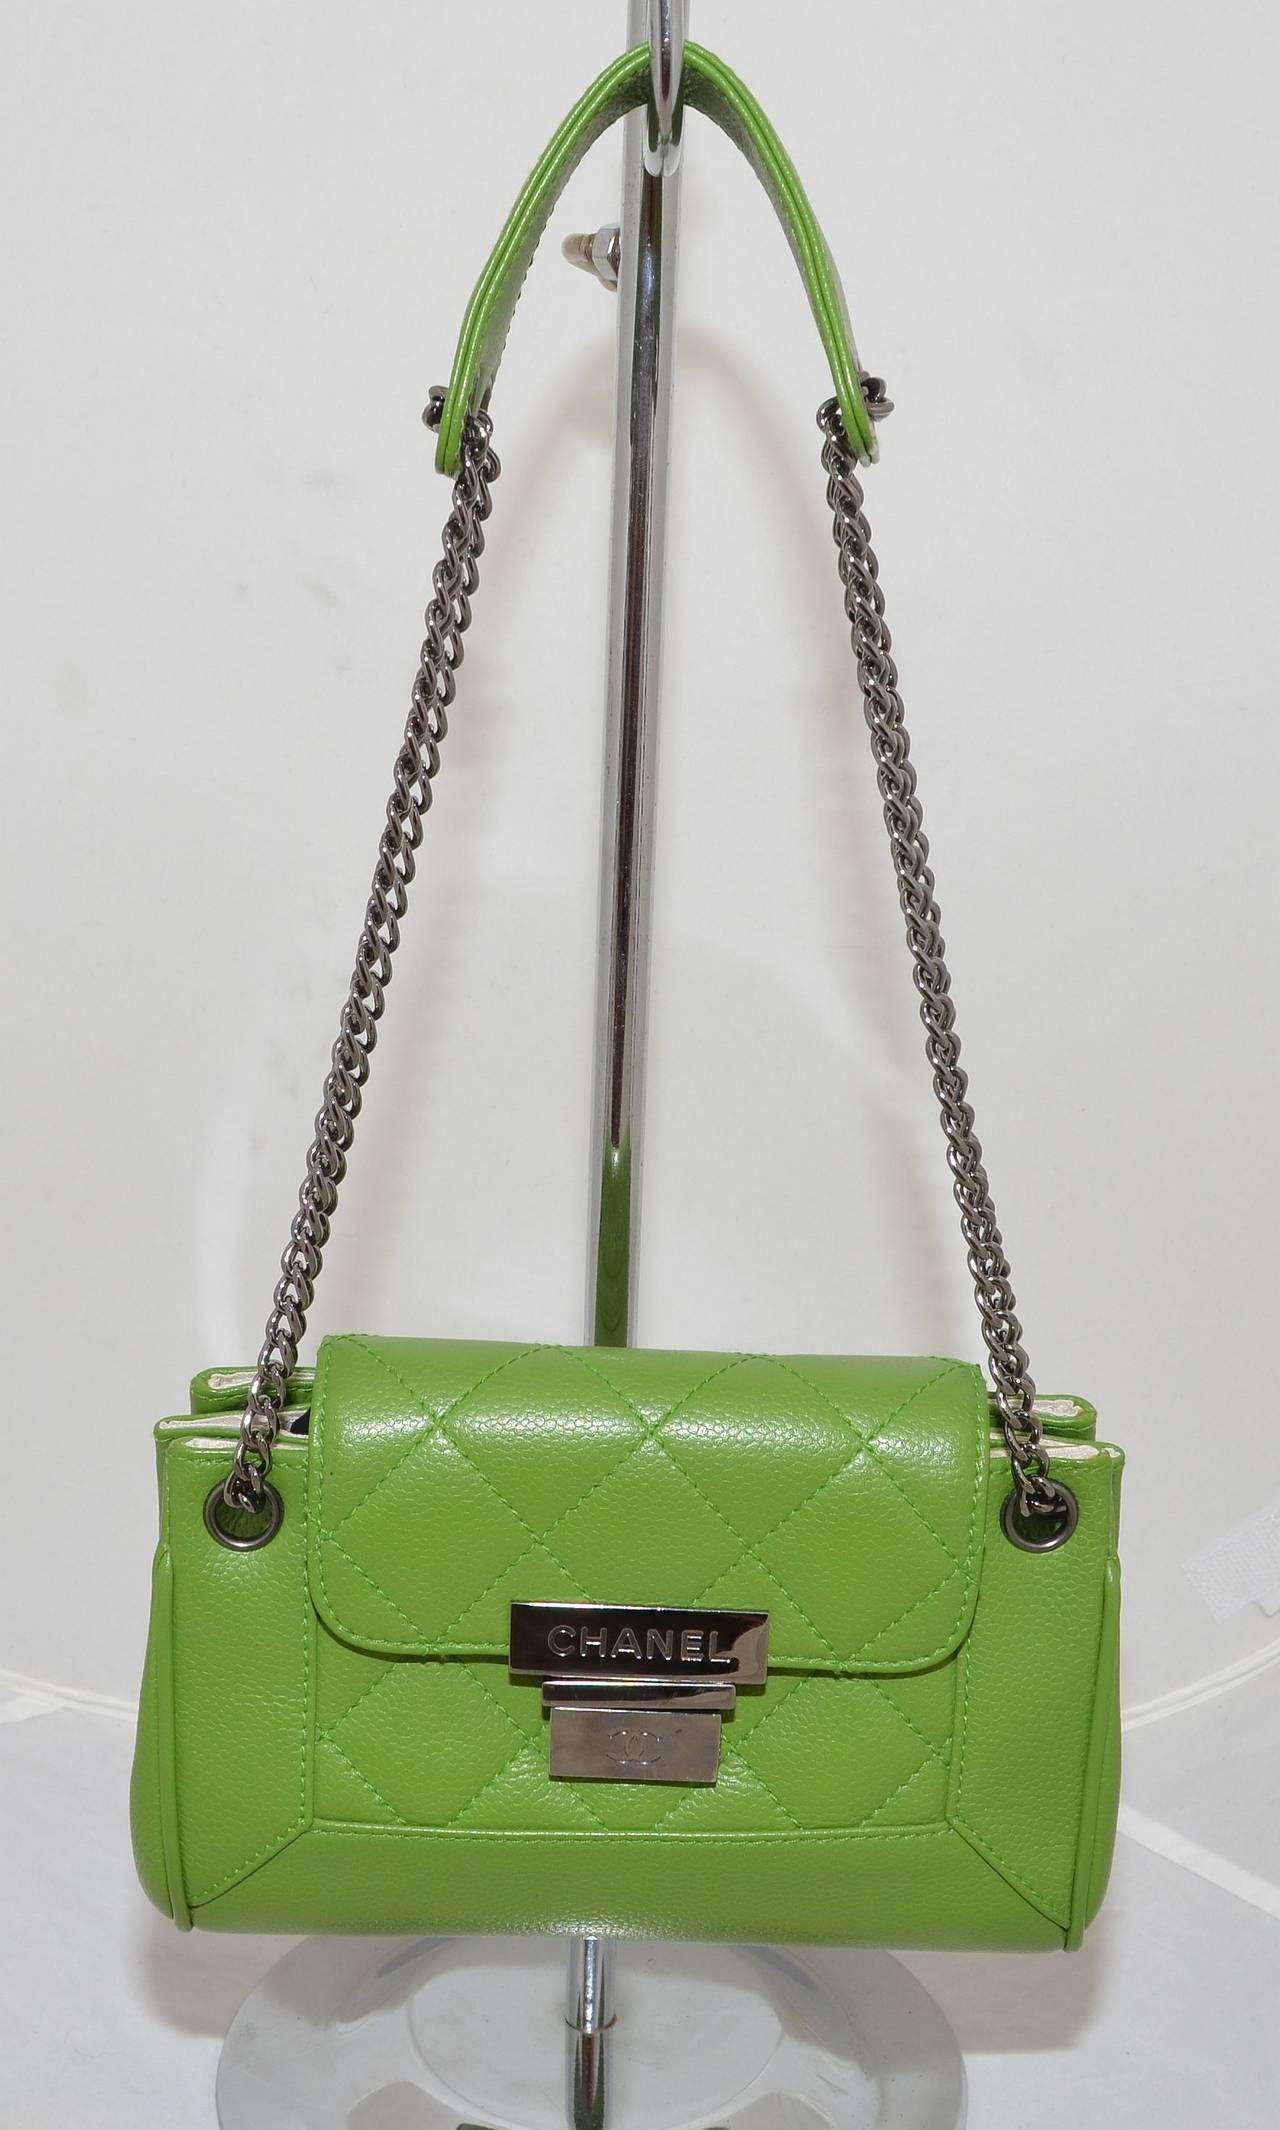 Chanel 2003-2004 Green Caviar Mini Quilted Chain Shoulder Bag 2